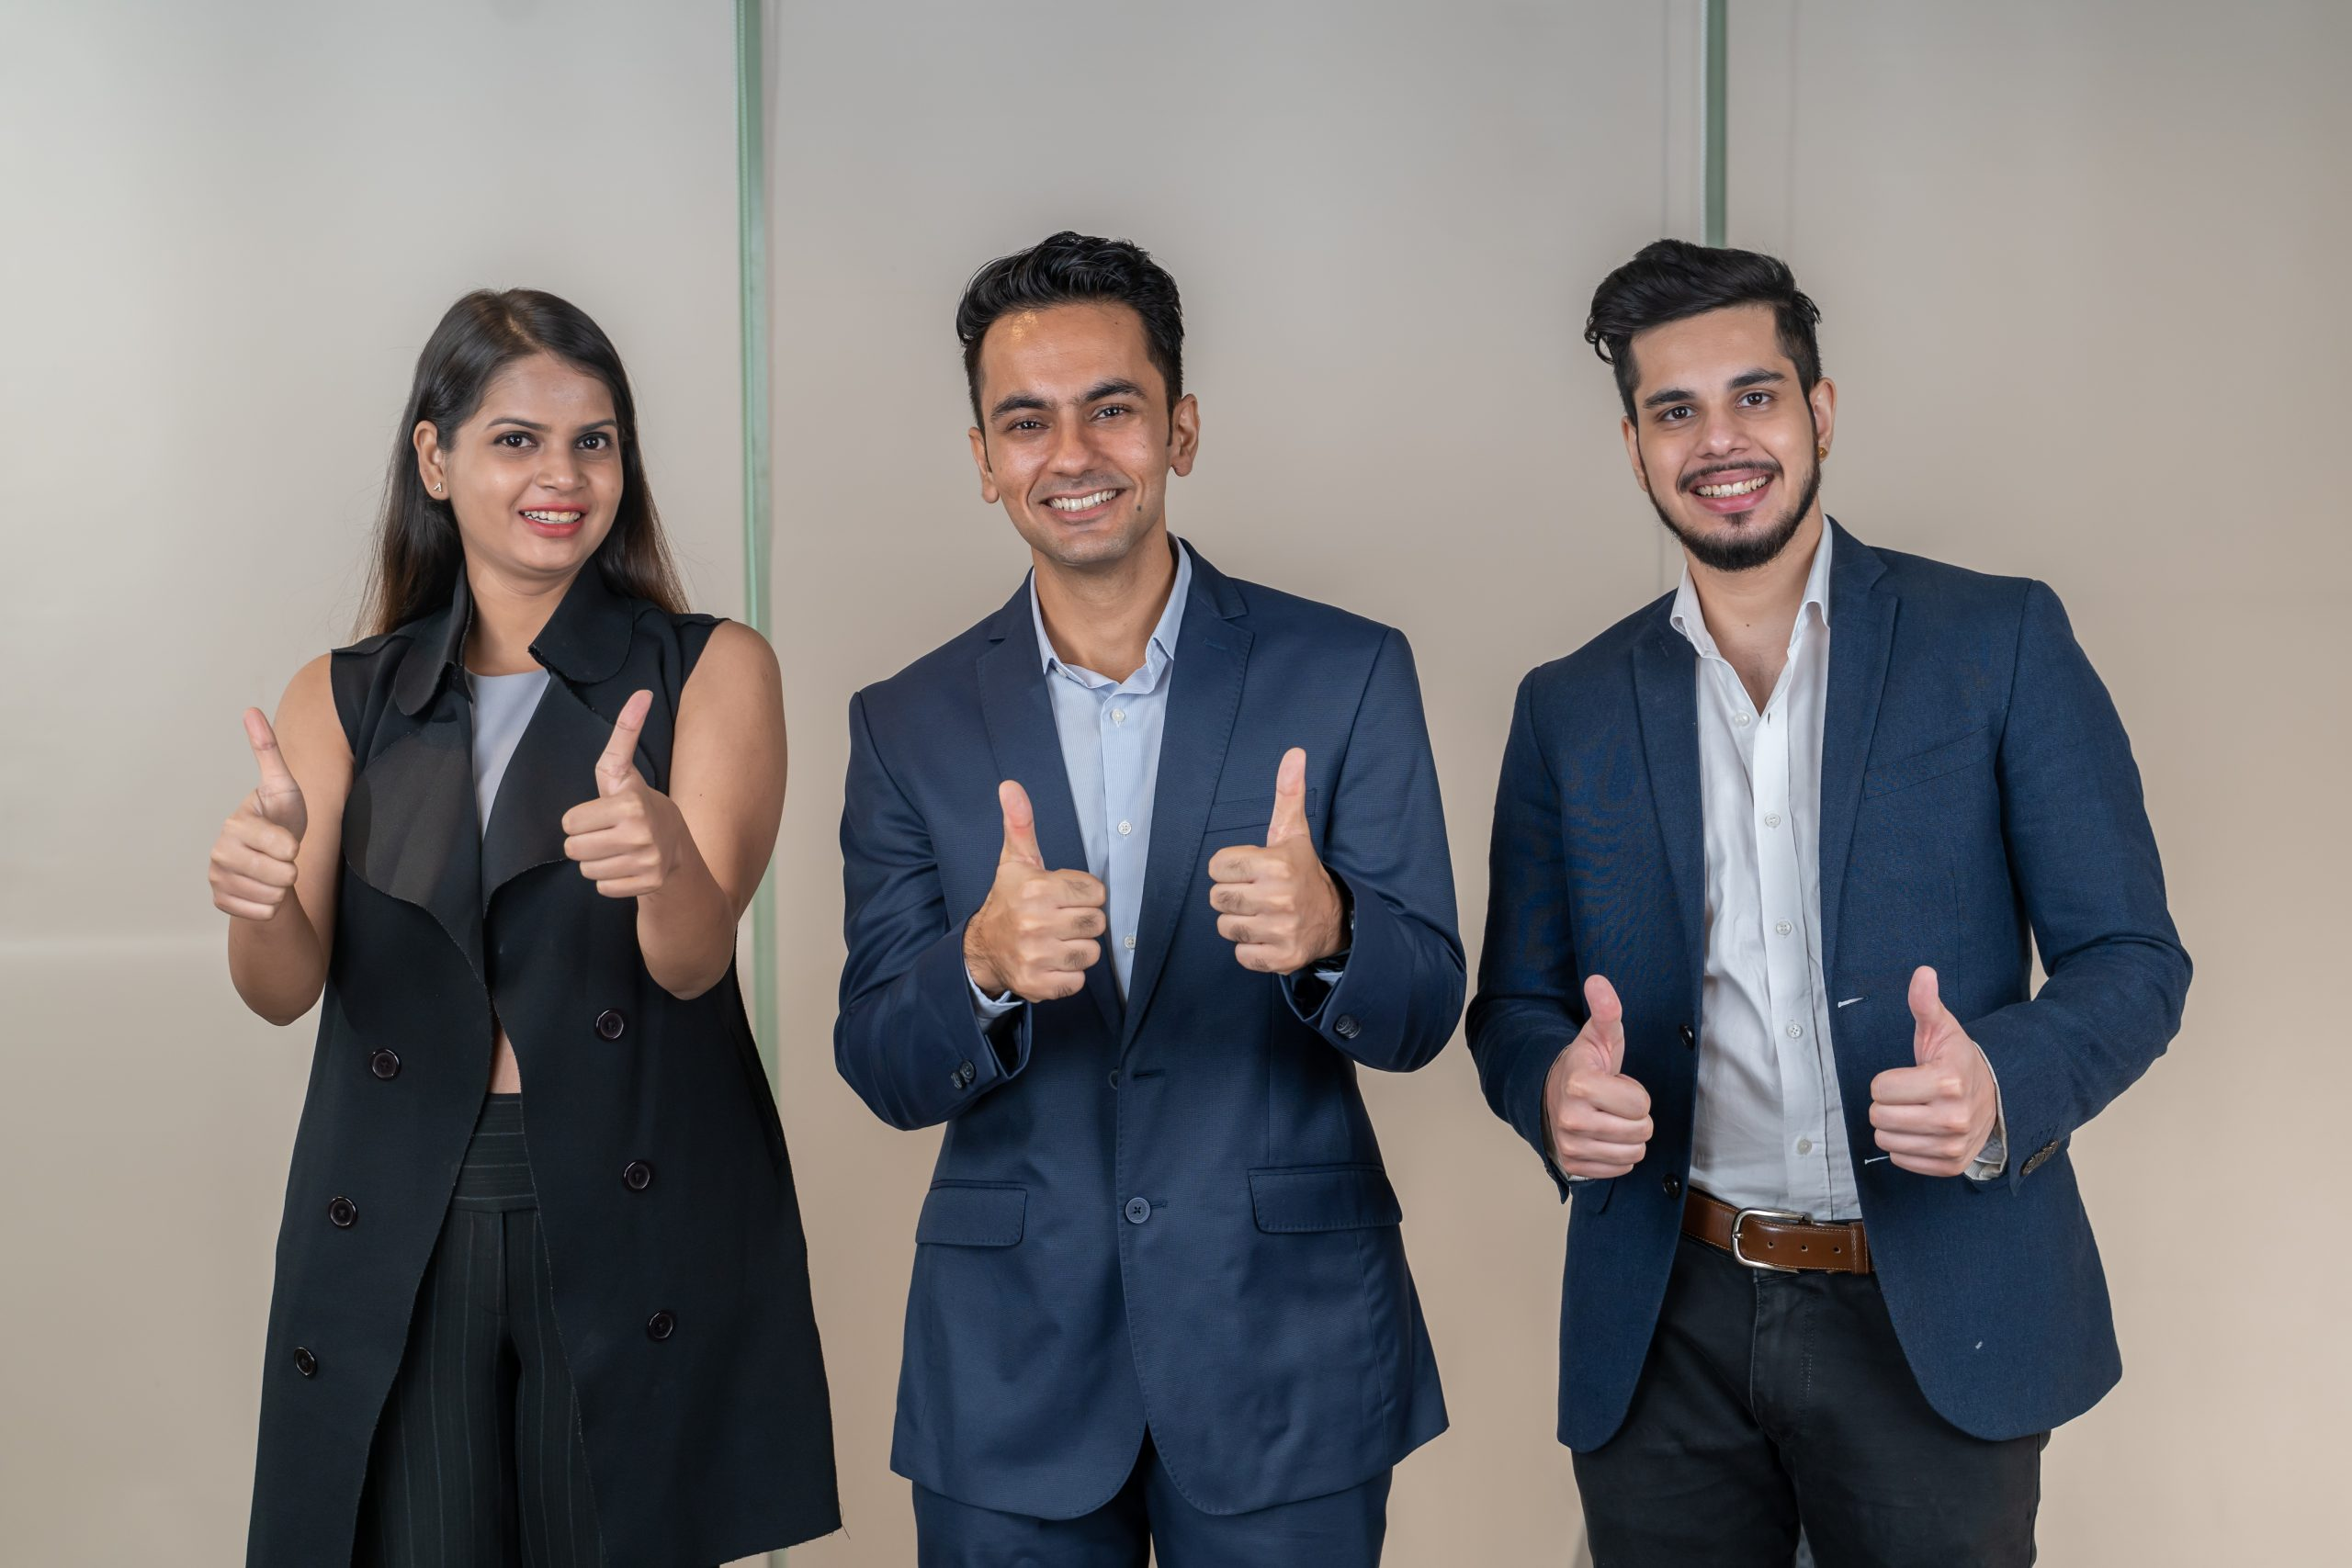 Professionals showing thumbs up